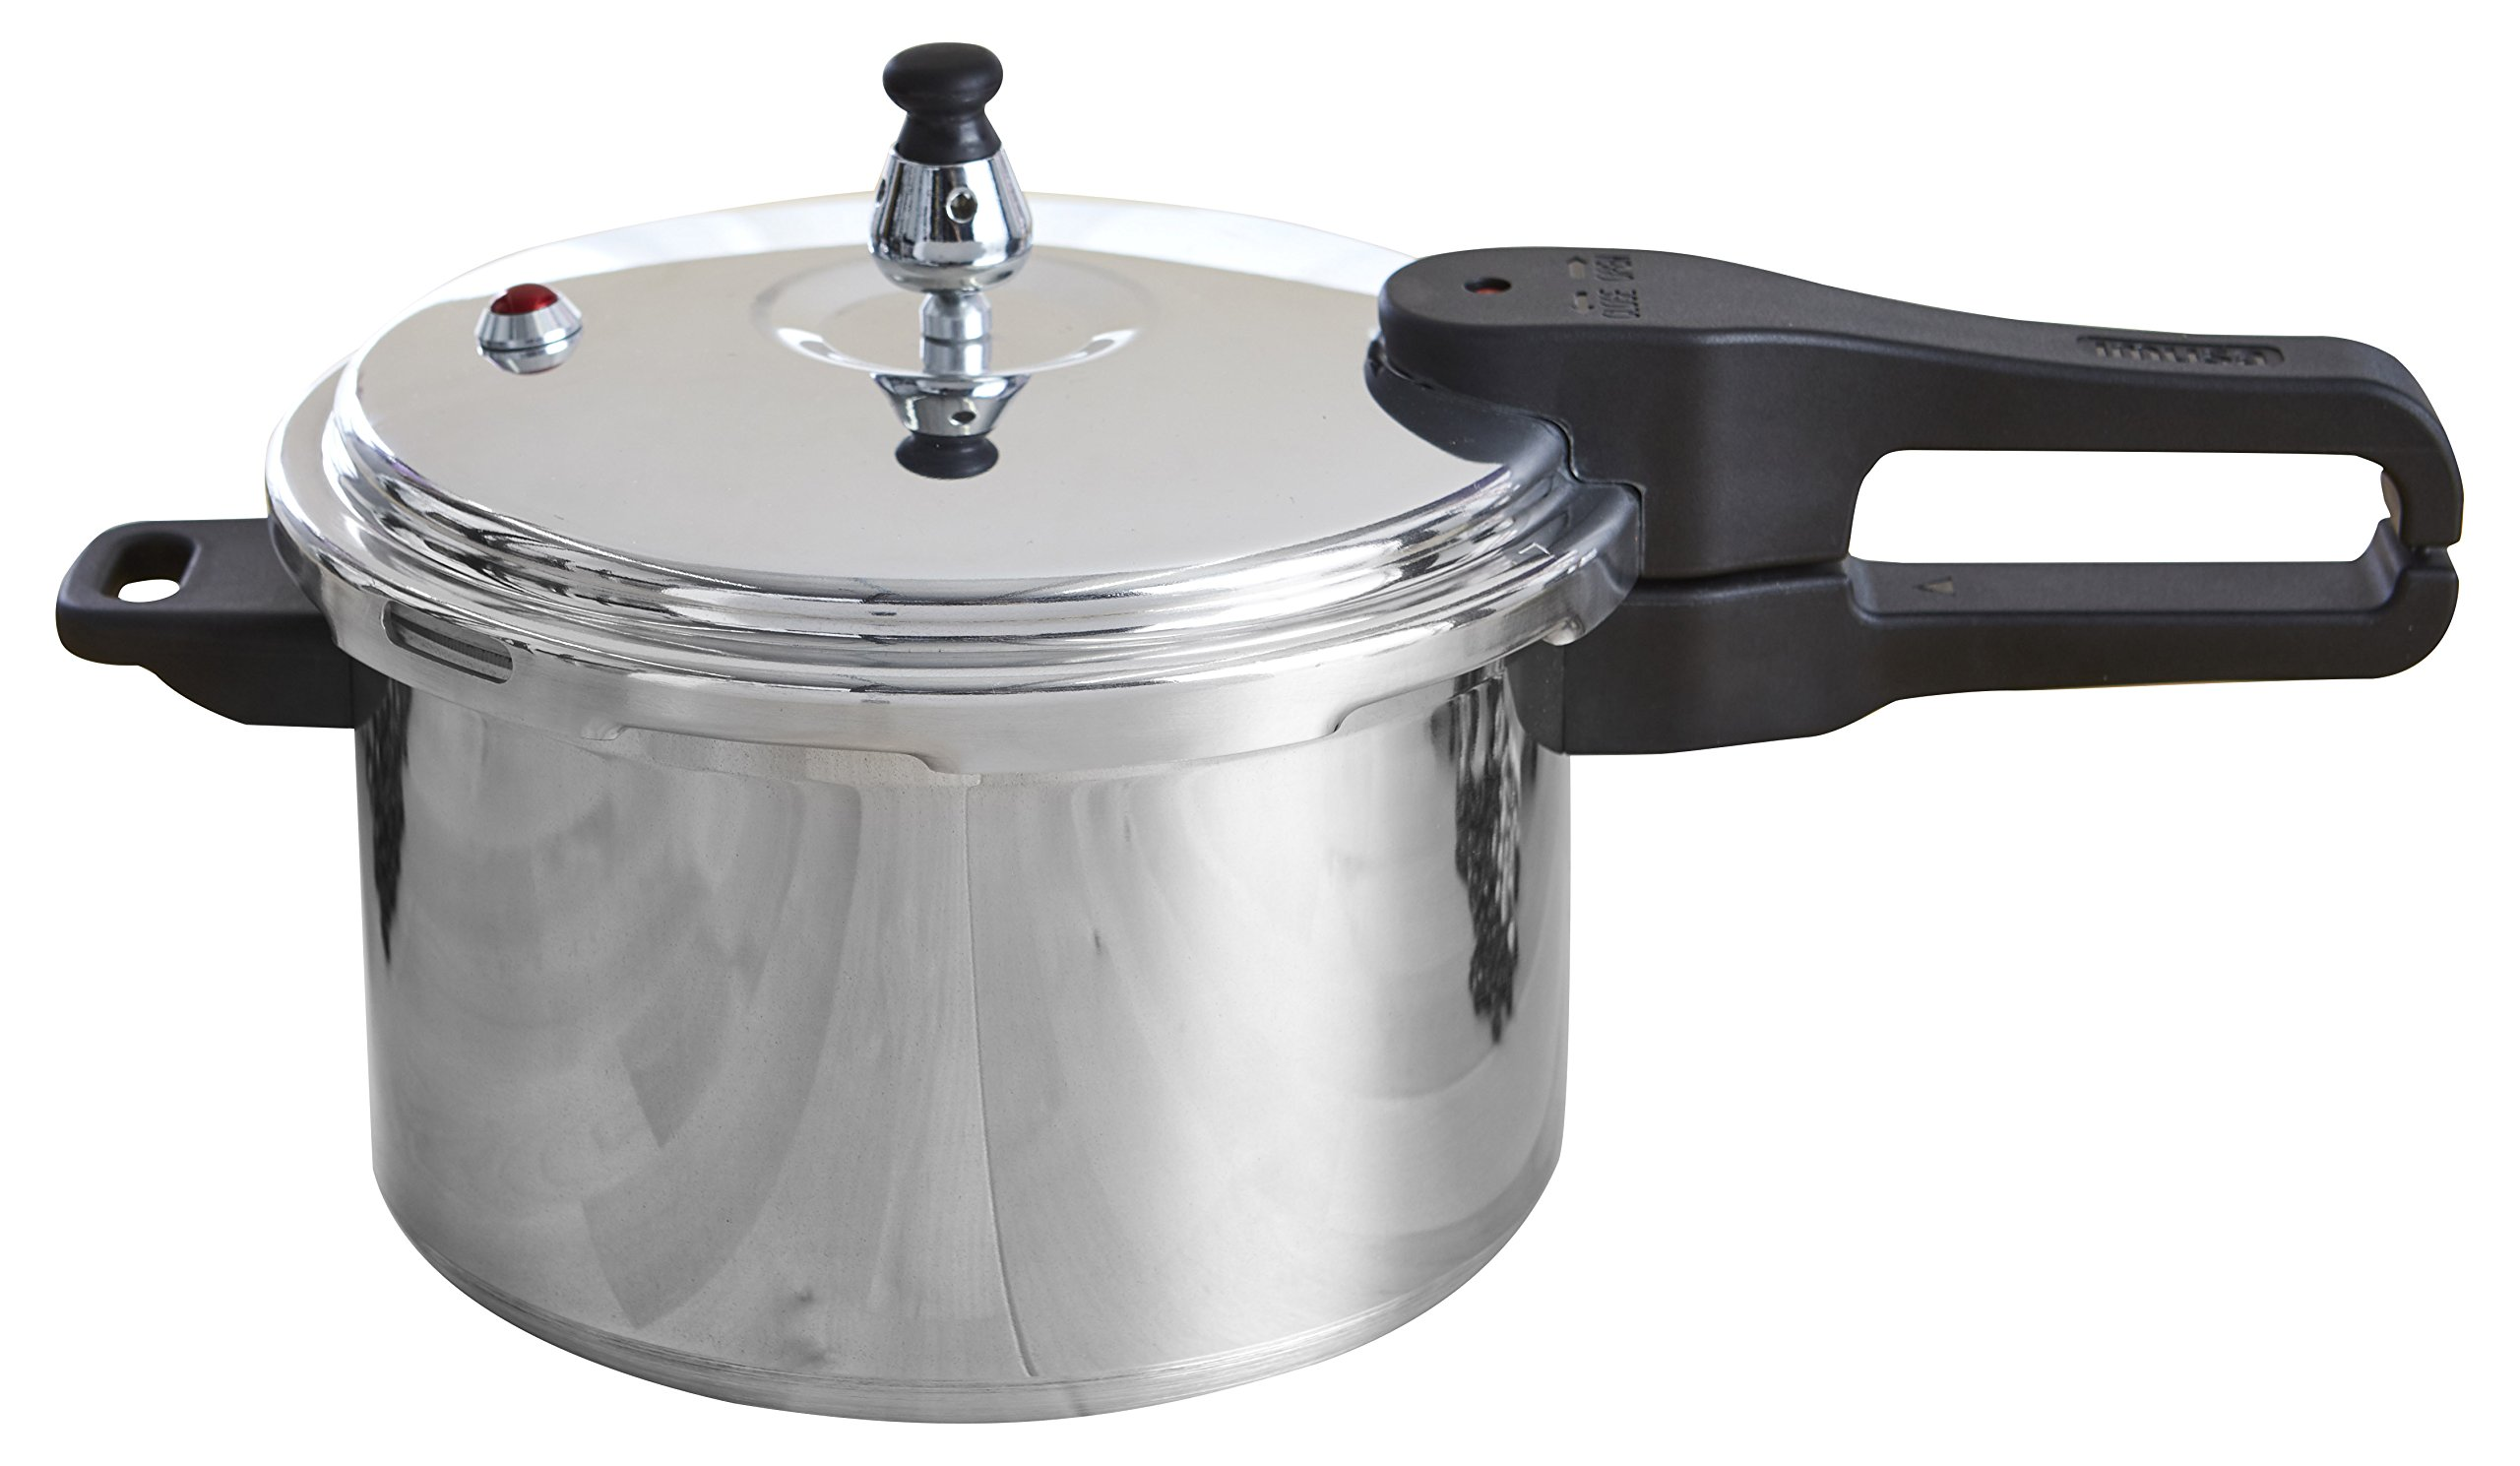 IMUSA USA A417-80801W Stovetop Aluminum Pressure Cooker 7.0-Quart,Silver by Imusa